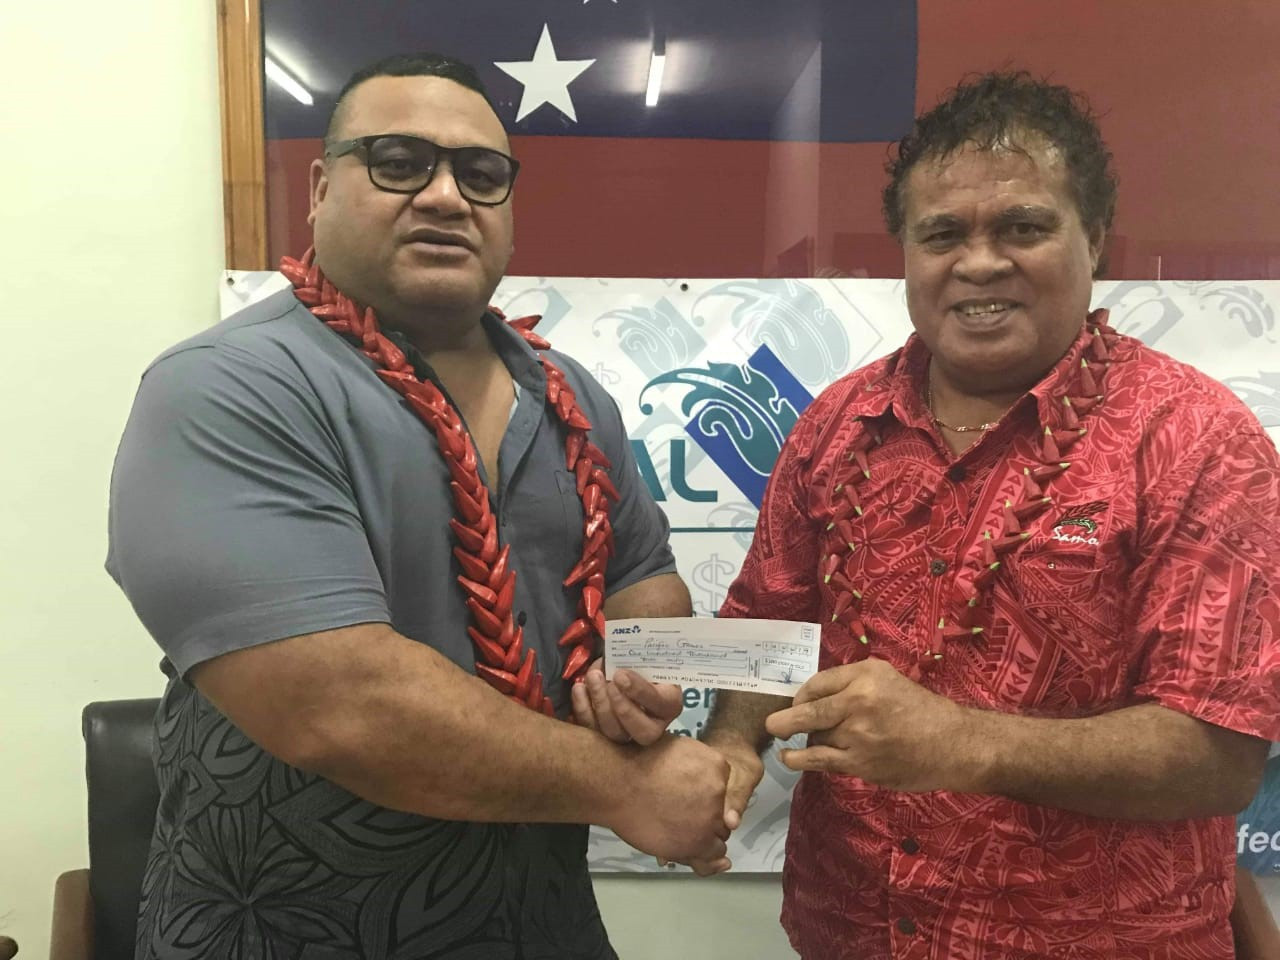 Samoan financial services provider becomes latest local company to sponsor 2019 Pacific Games